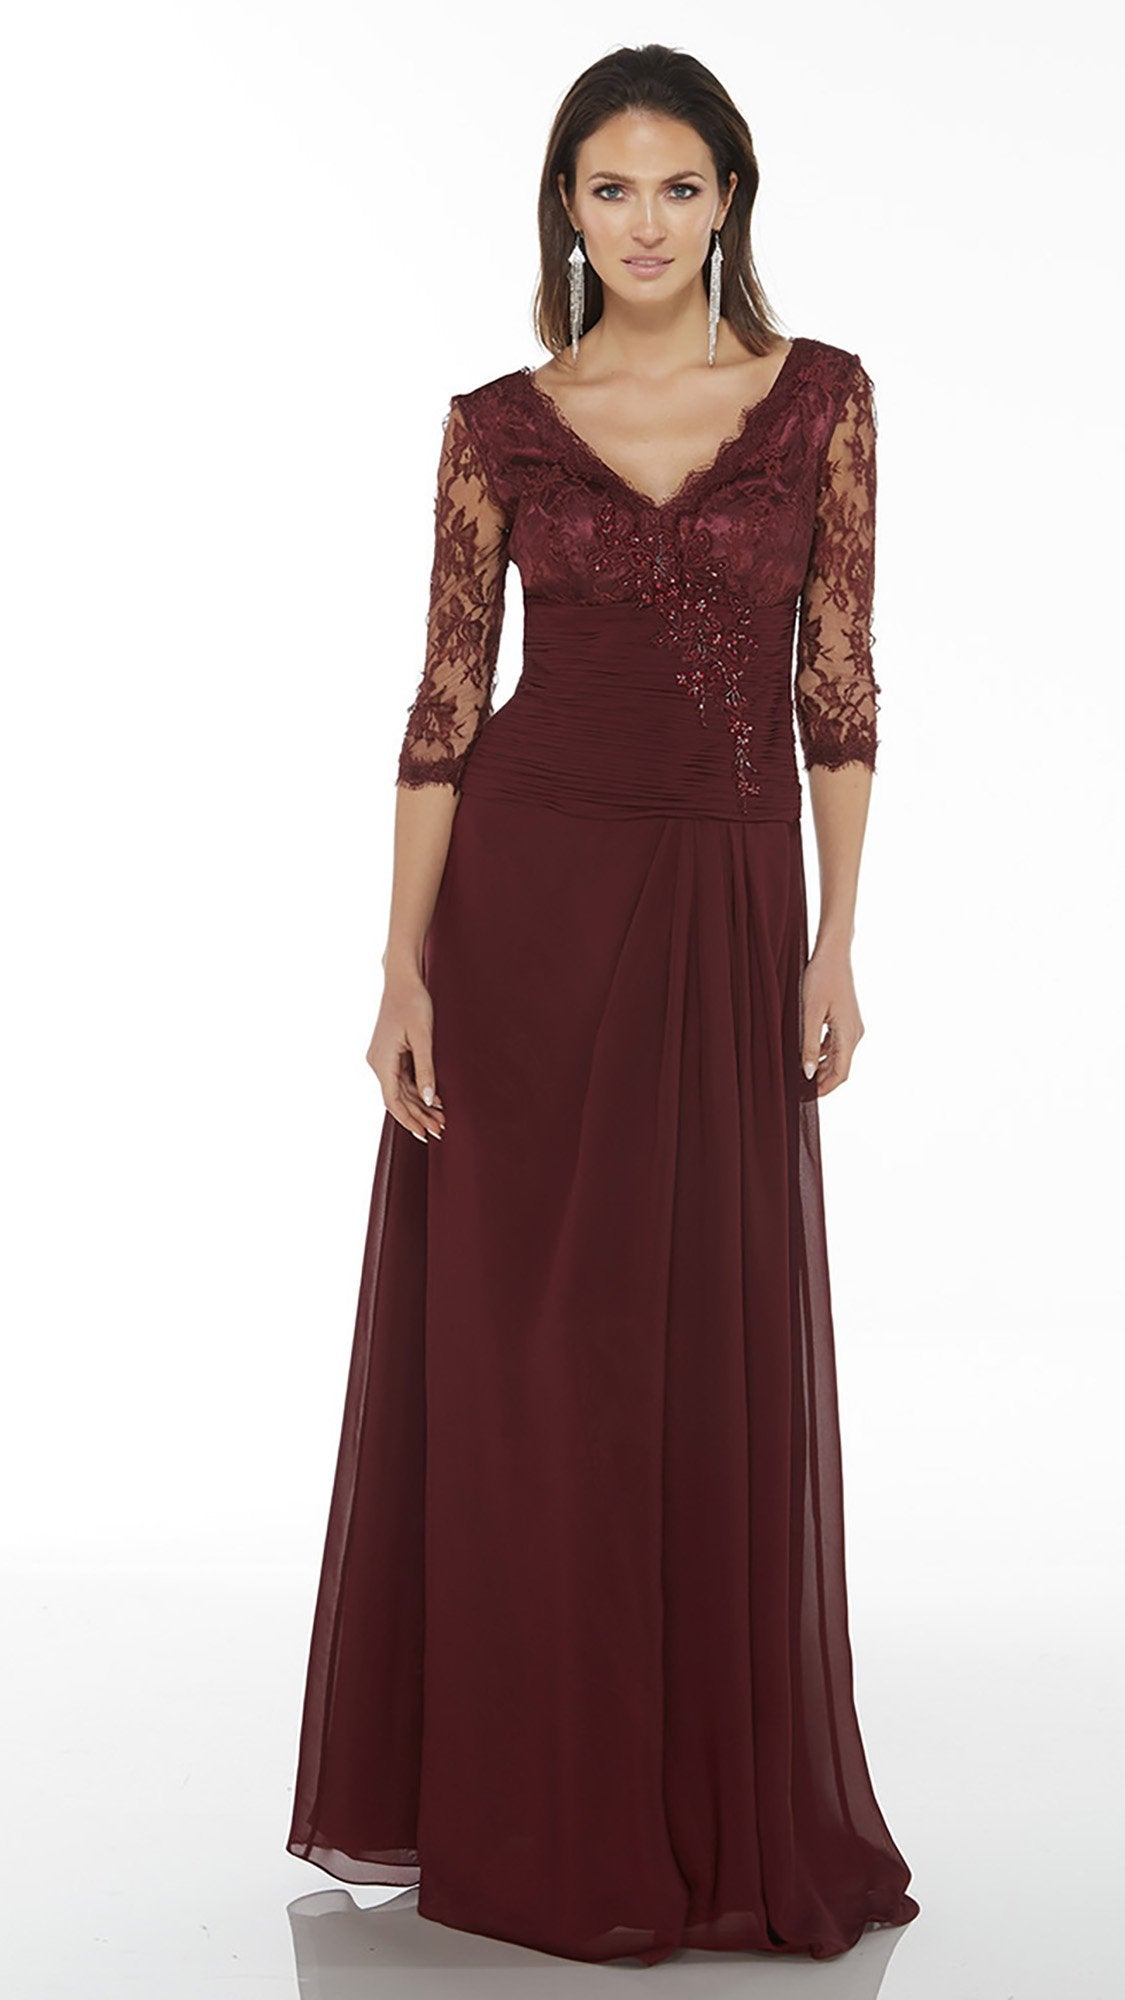 Alyce Paris - 29364SC Beaded Ruched Midriff A-Line Dress